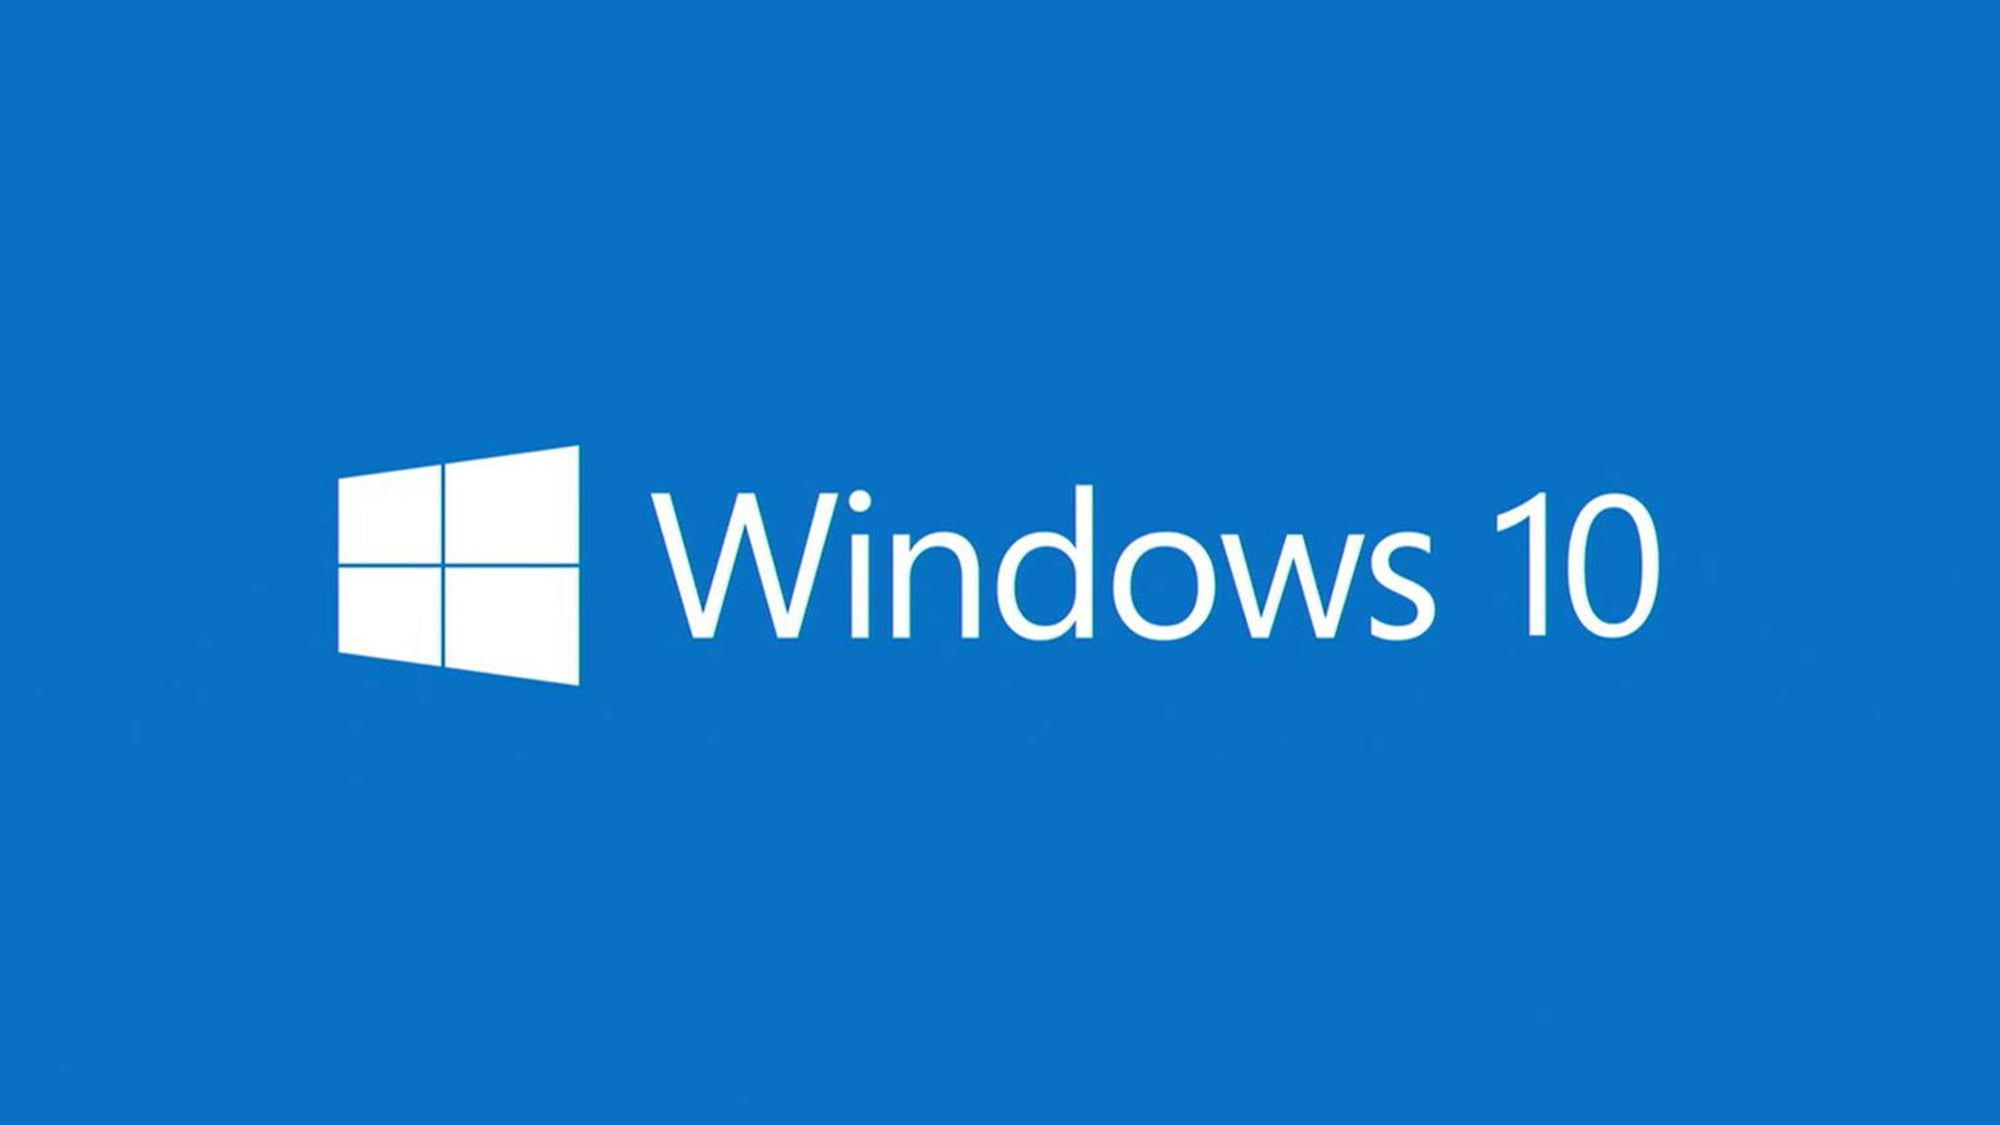 New Windows 10 tool shows you the information Microsoft holds on you